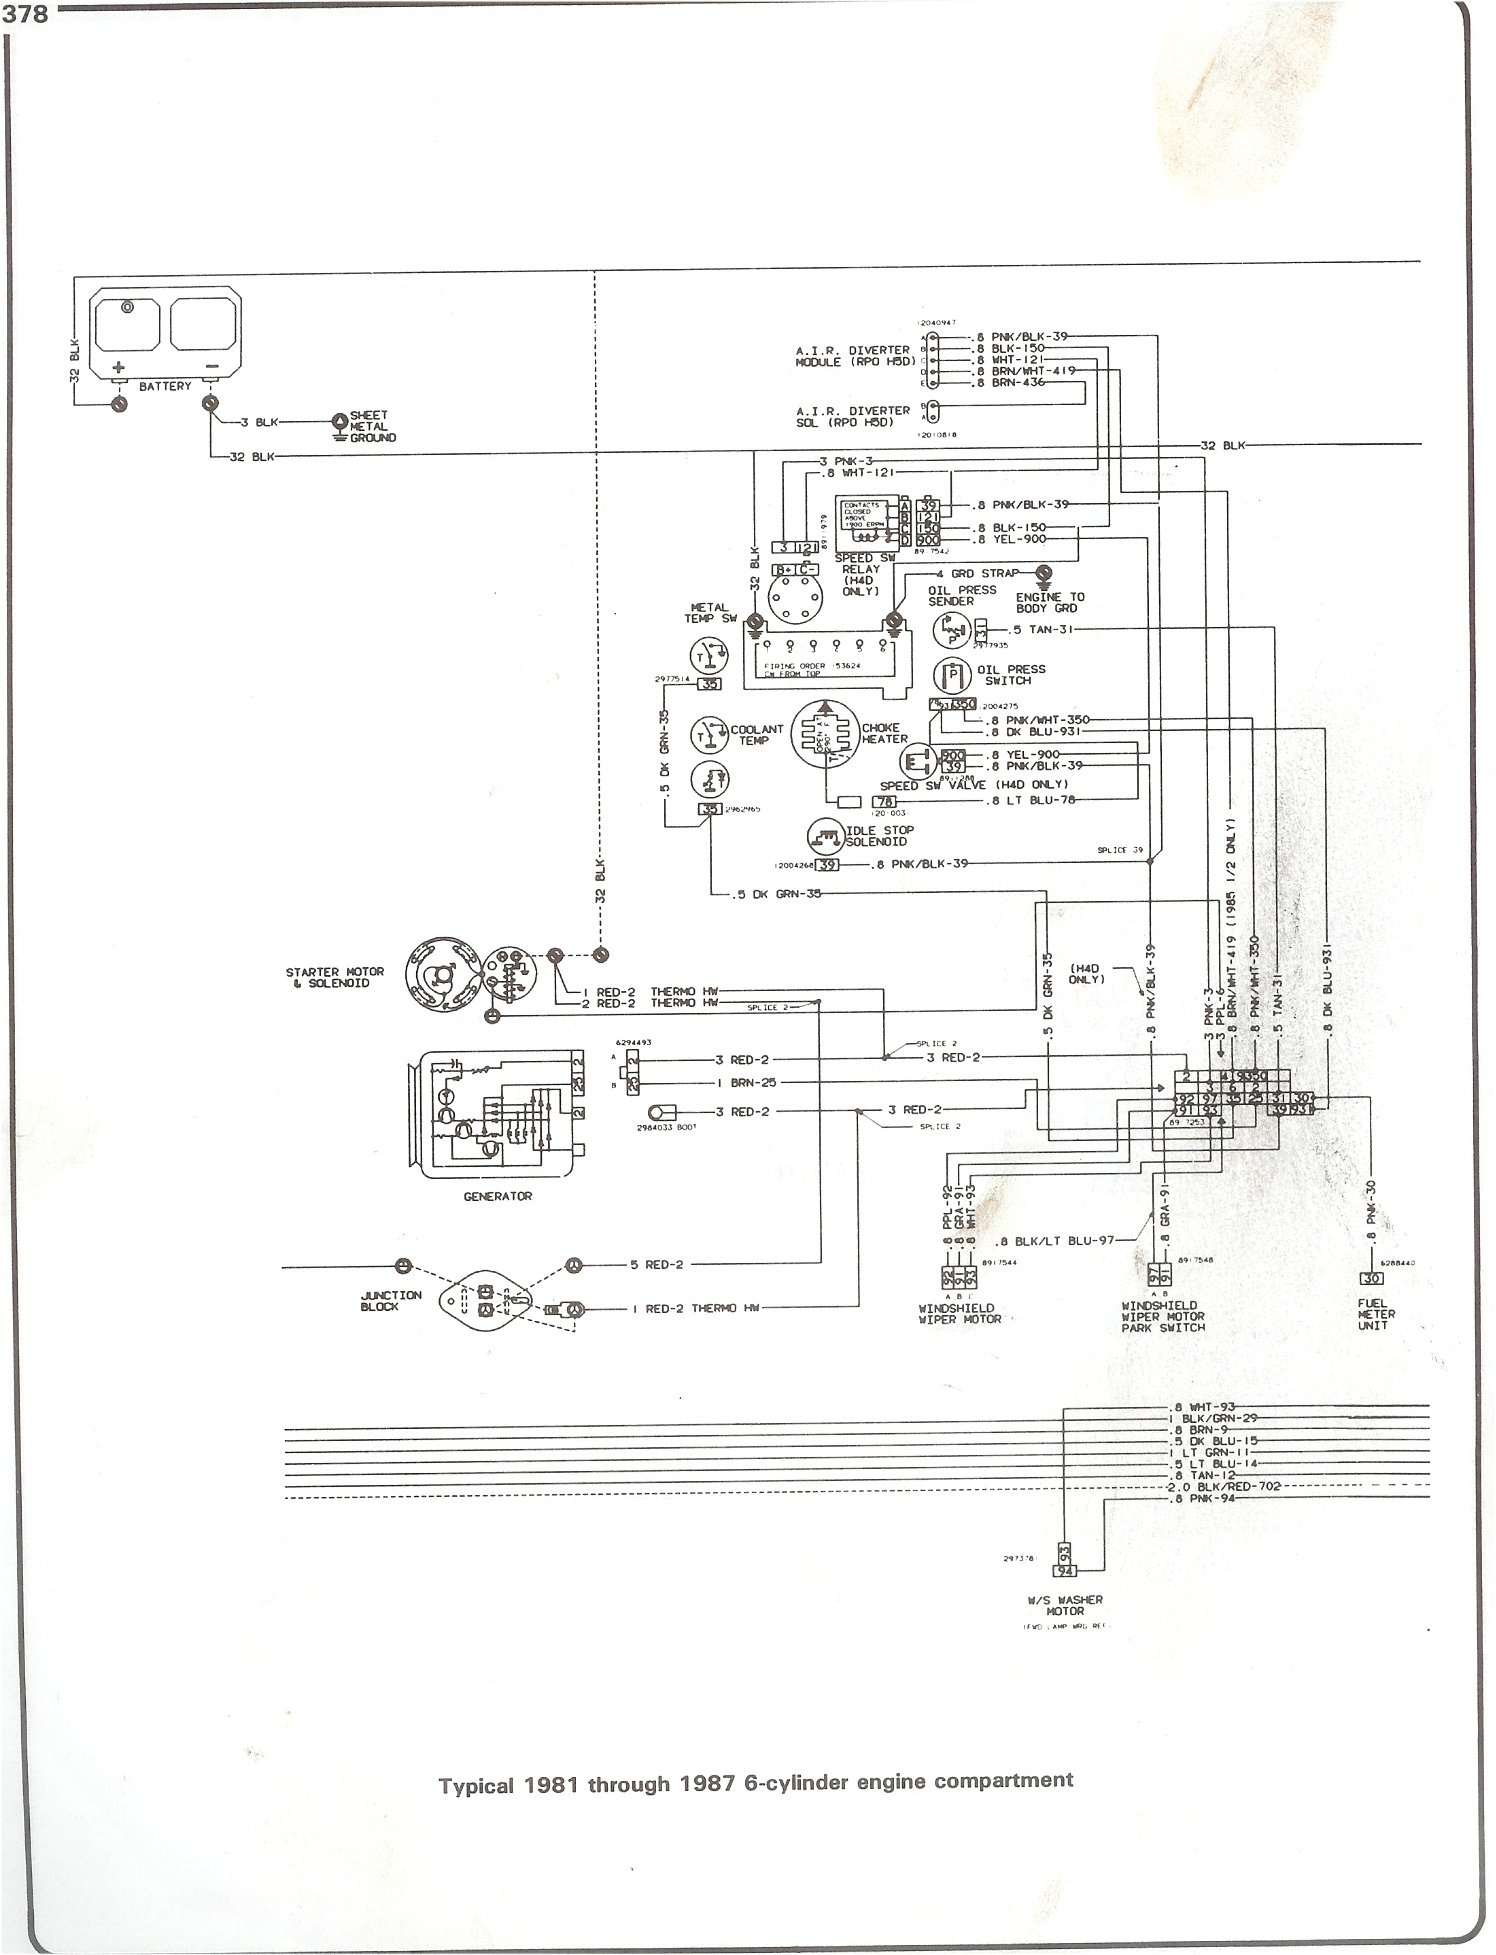 496610 69 Mustang Needs Vacuum Diagram further Archived Dayton 6k040f Motor Wiring Diagram as well 2001 Jeep Wrangler Stereo Wiring Diagram 2 as well Mazda 3 0 V6 Engine Diagram besides Wiring. on 3 wire alternator wiring